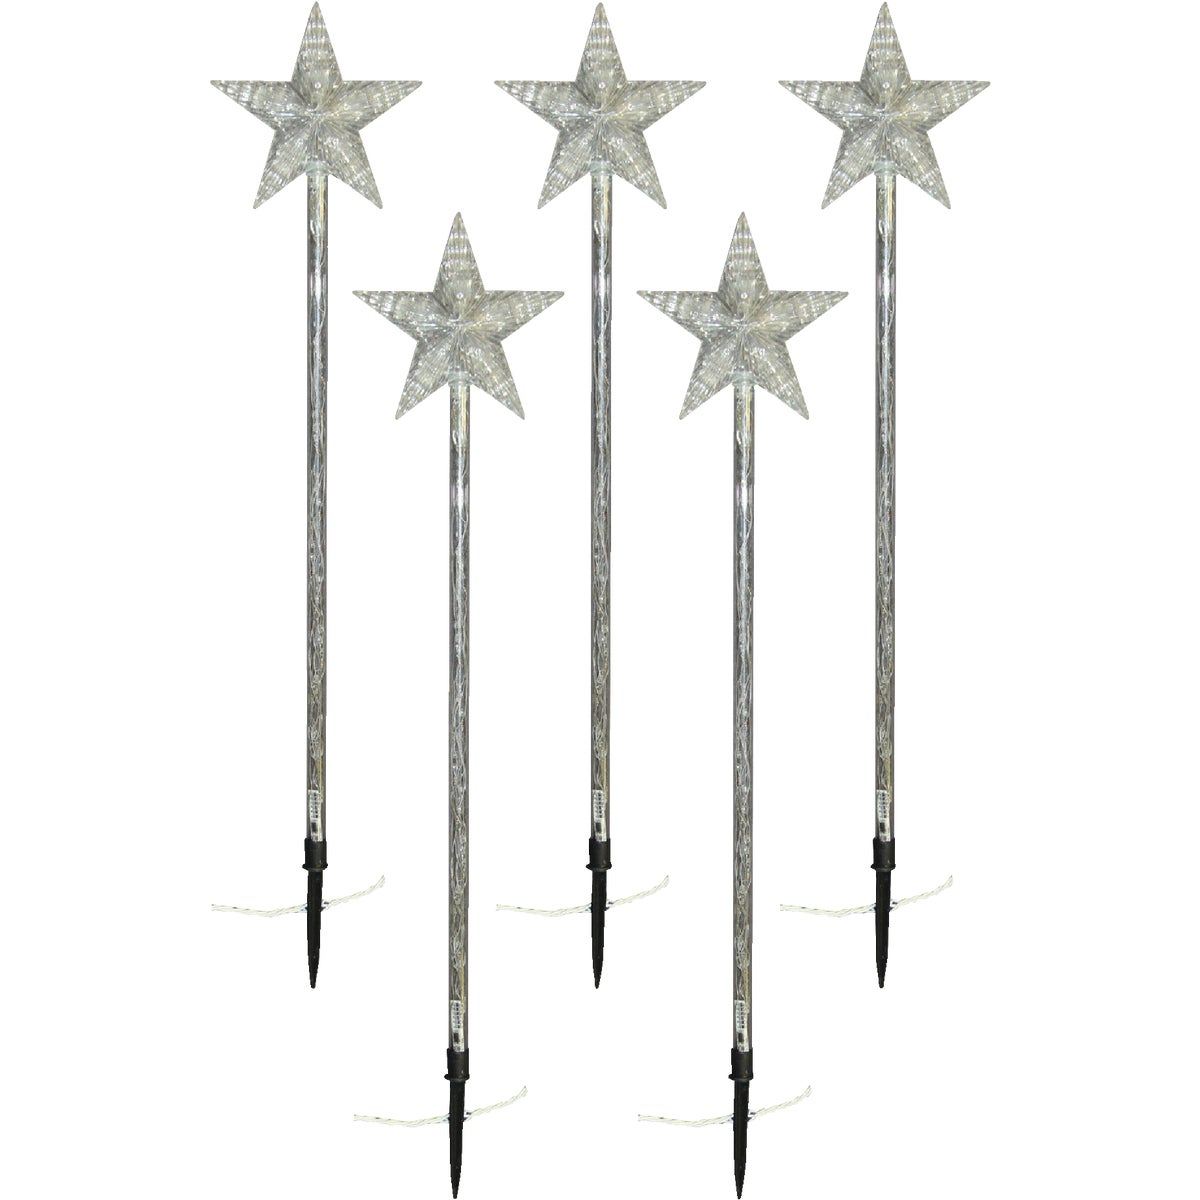 STAR SET/5 PATHMARKERS - 48-732-67 by Brite Star